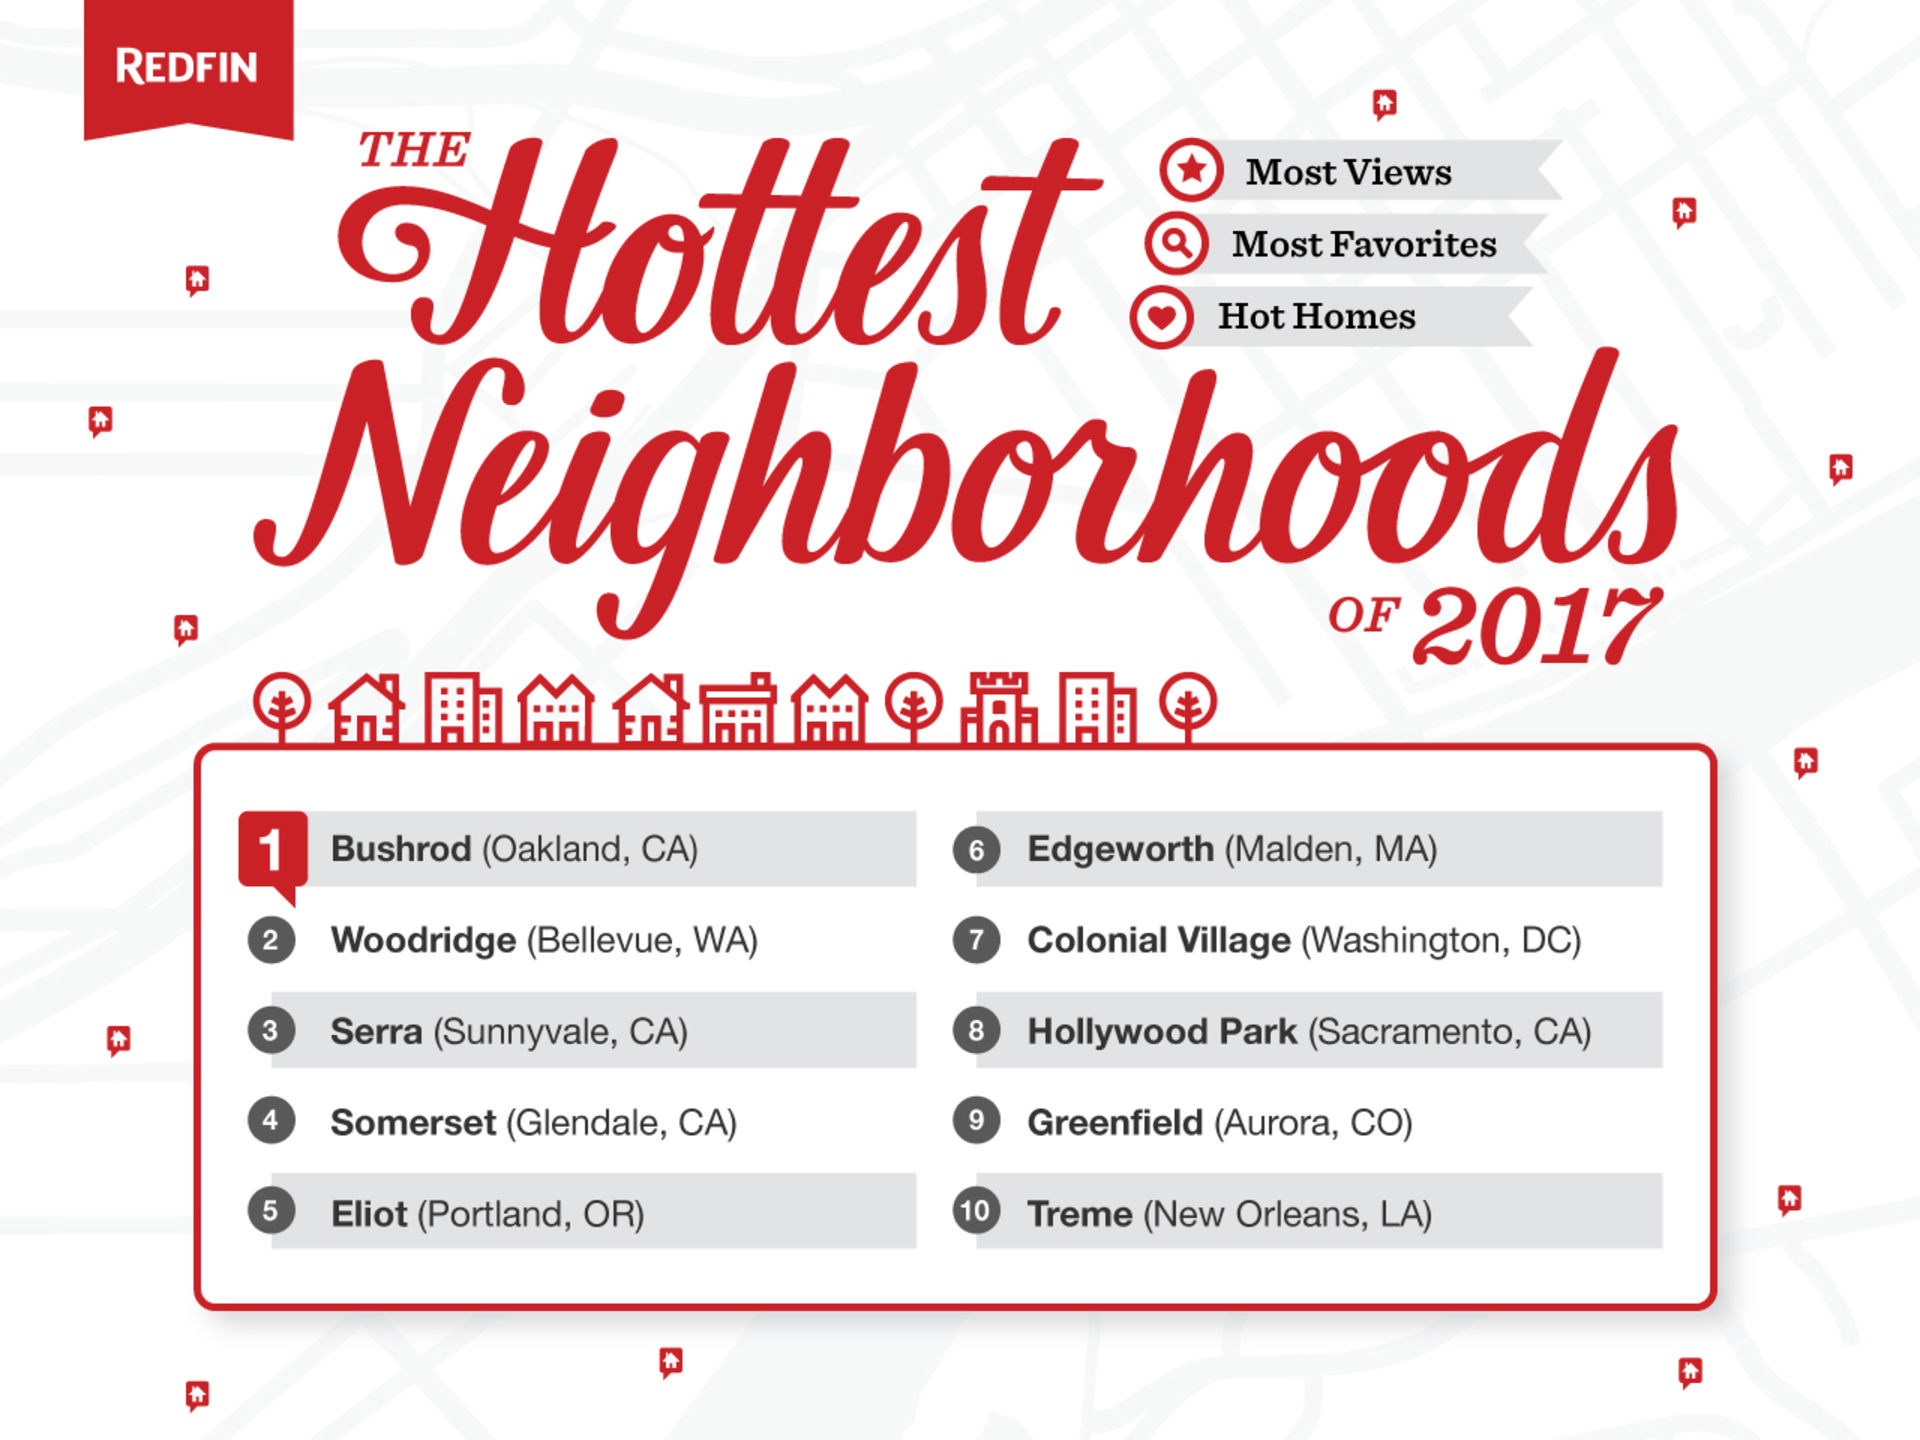 Redfin Predicts the Hottest Neighborhoods of 2017